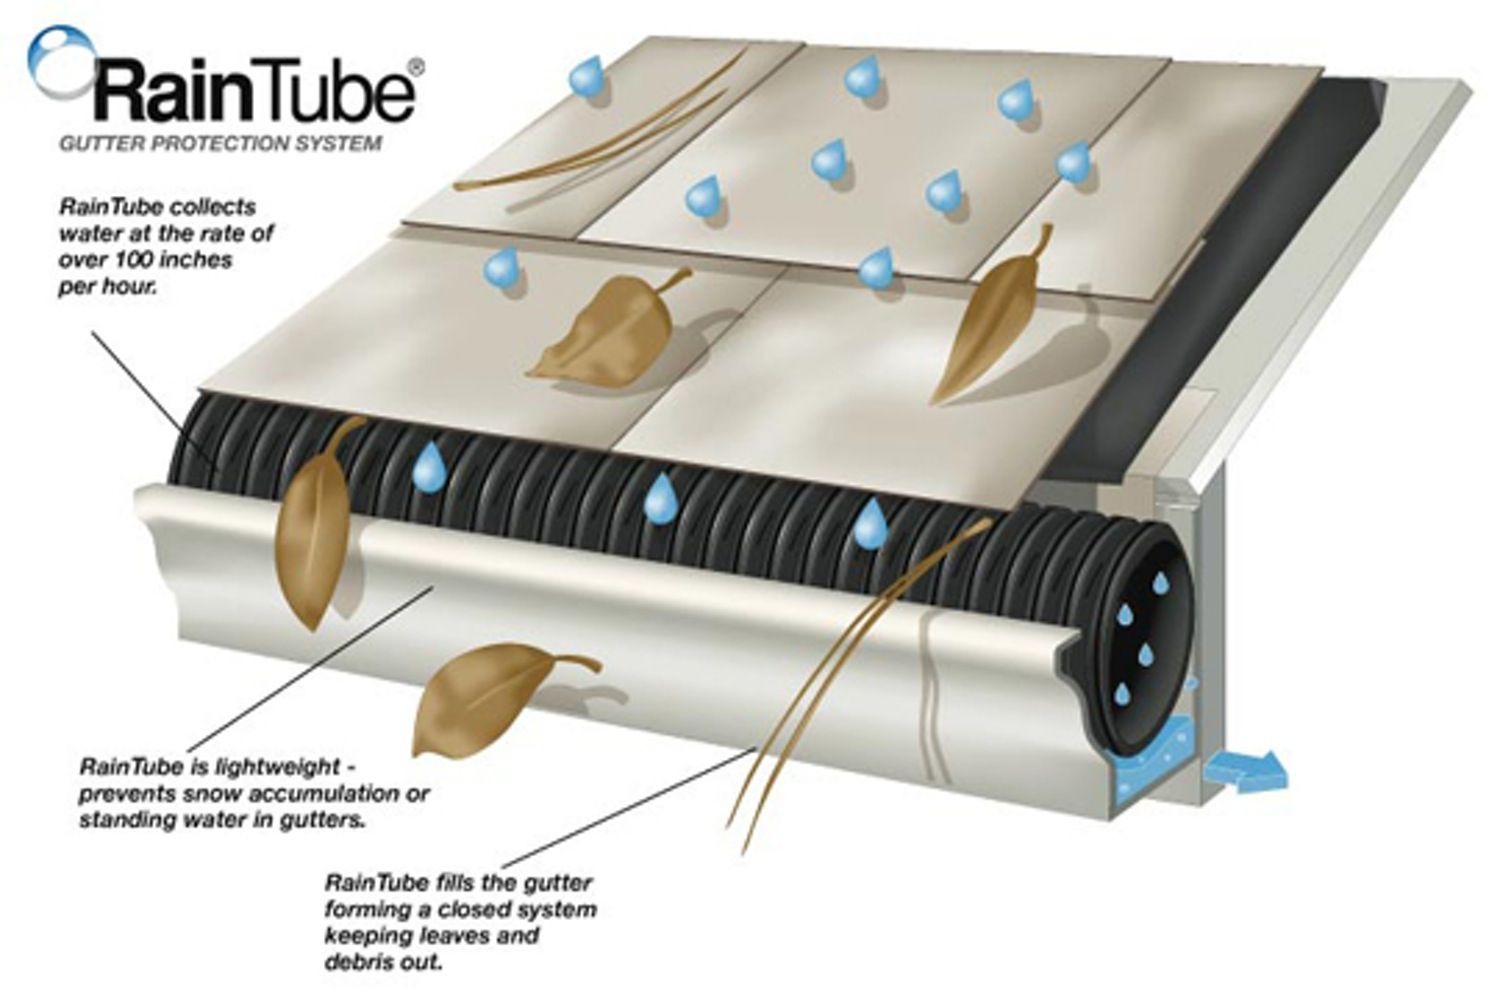 Raintube Perforated Gutter Protection Gutter Protection Water Collection Rainwater Harvesting